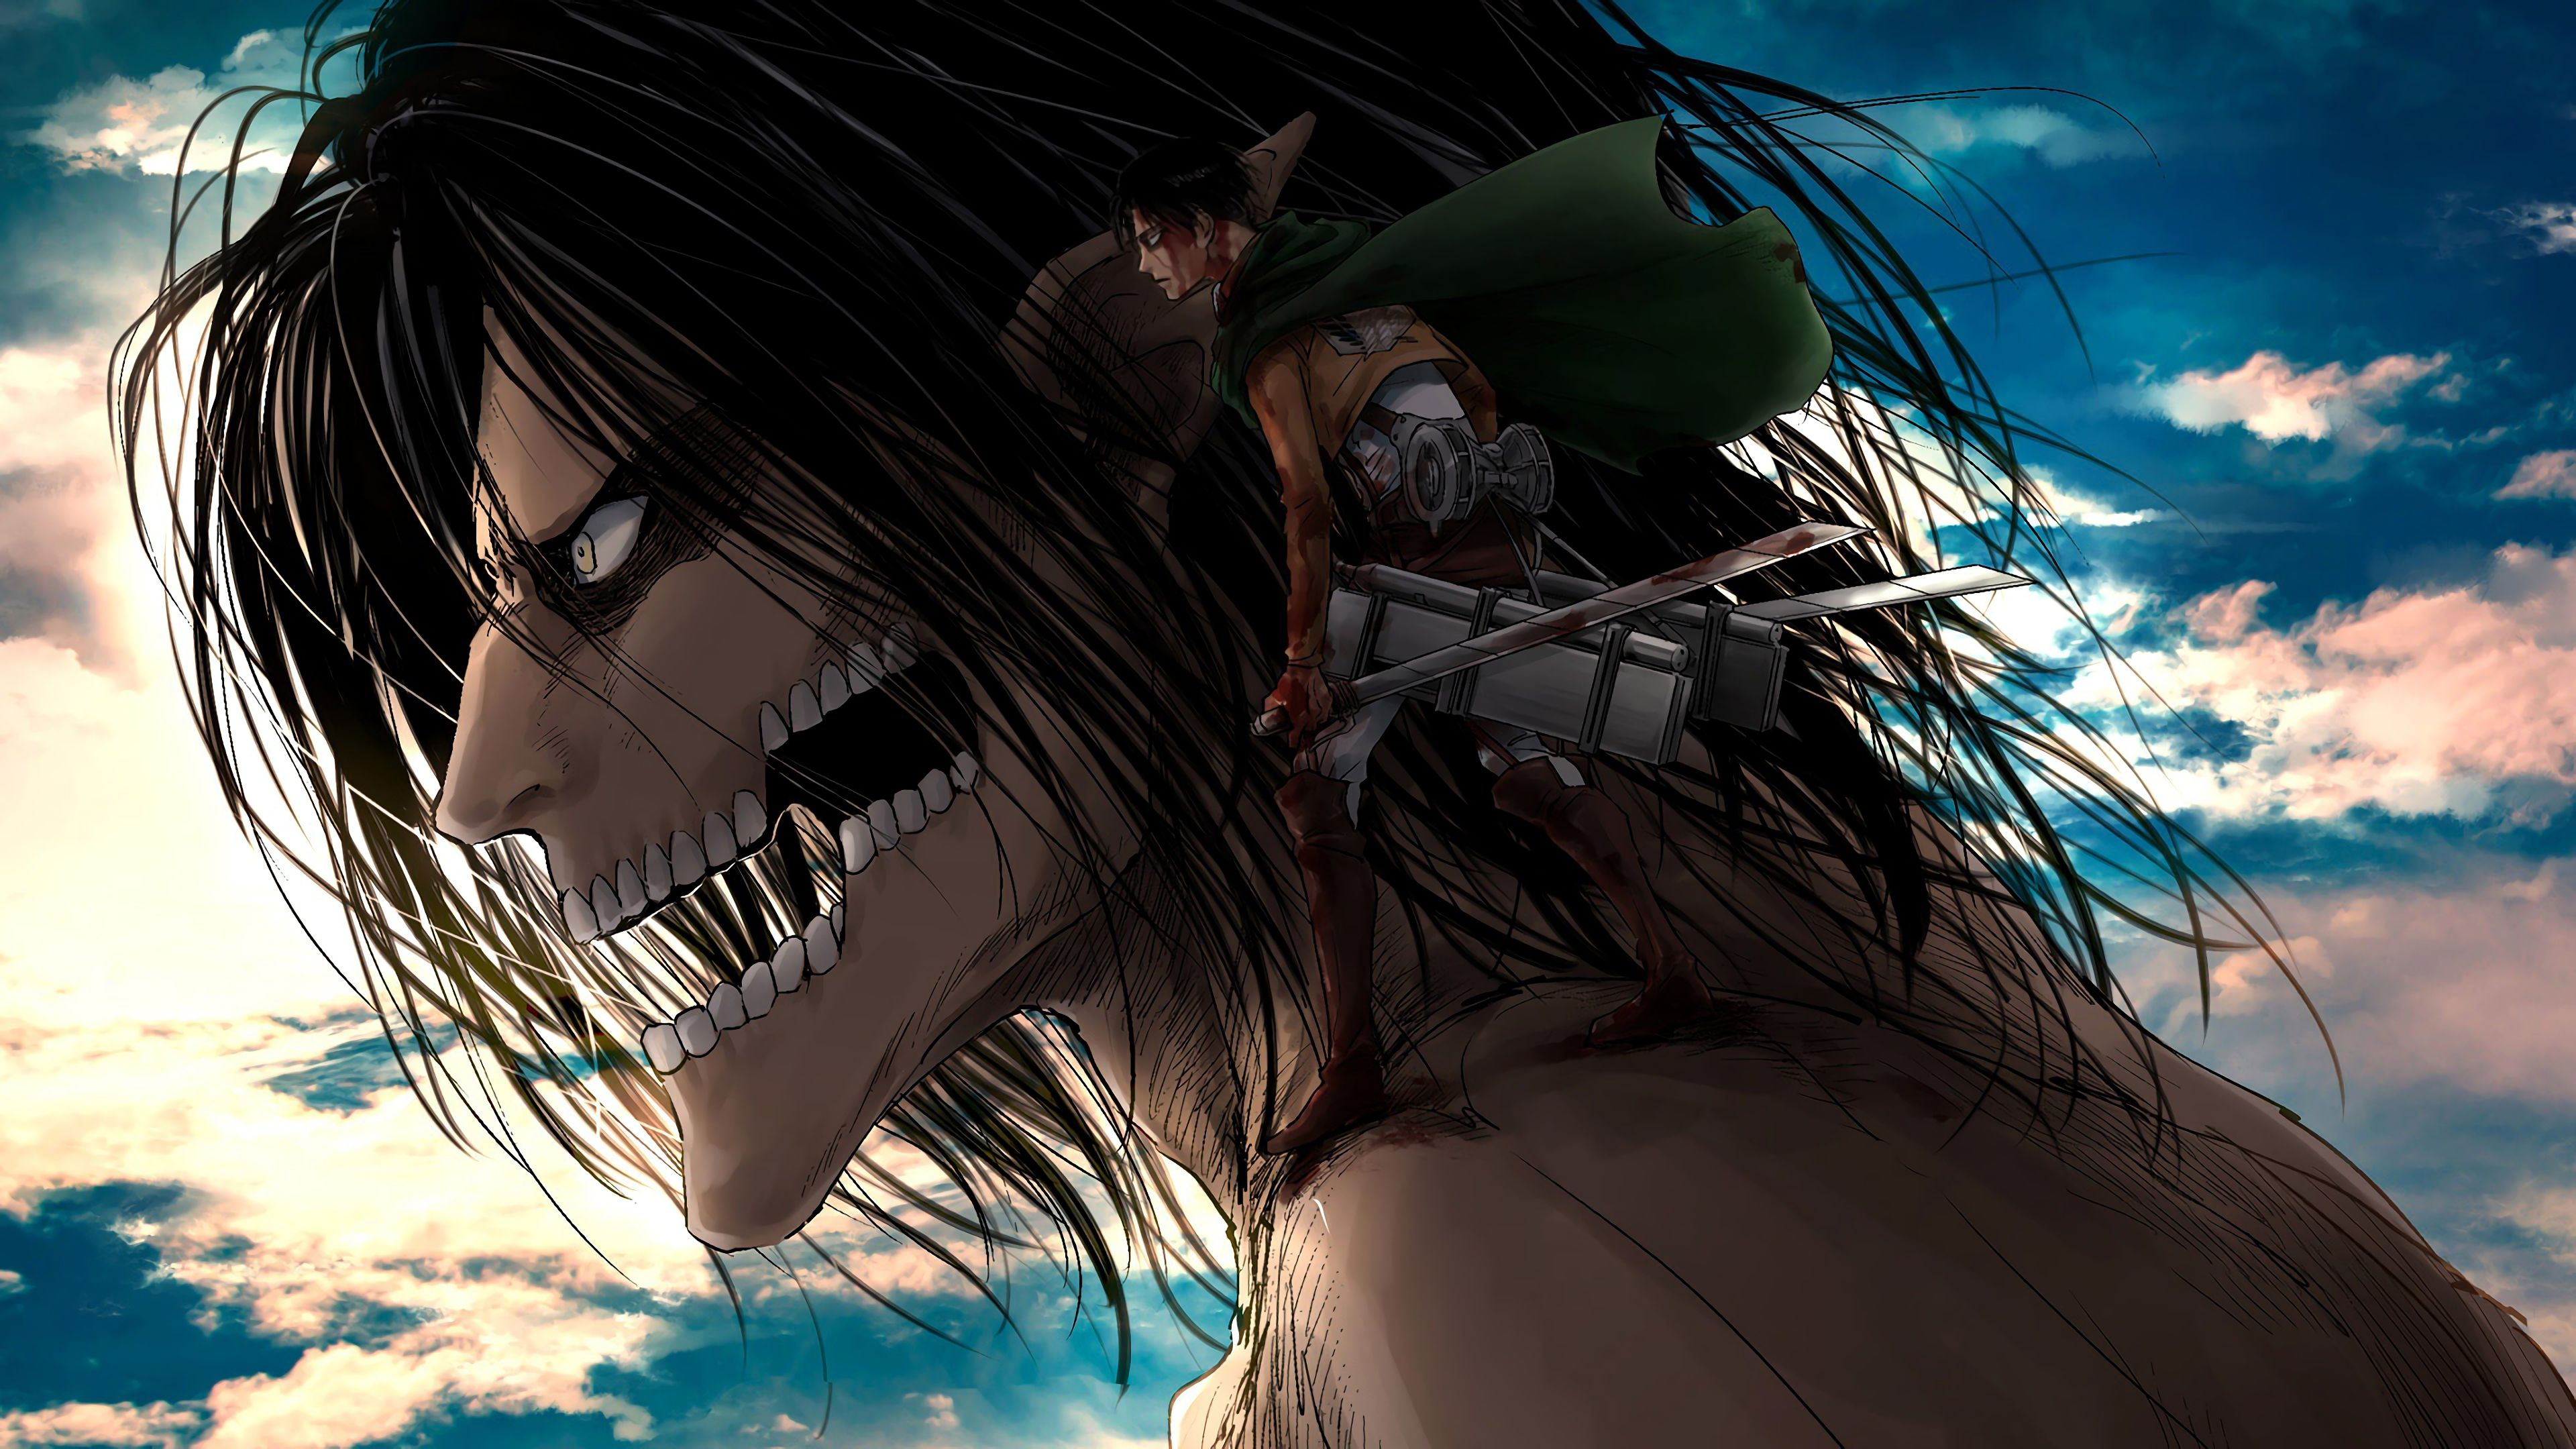 Attack On Titan 4k Wallpapers Top Free Attack On Titan 4k Backgrounds Wallpaperaccess